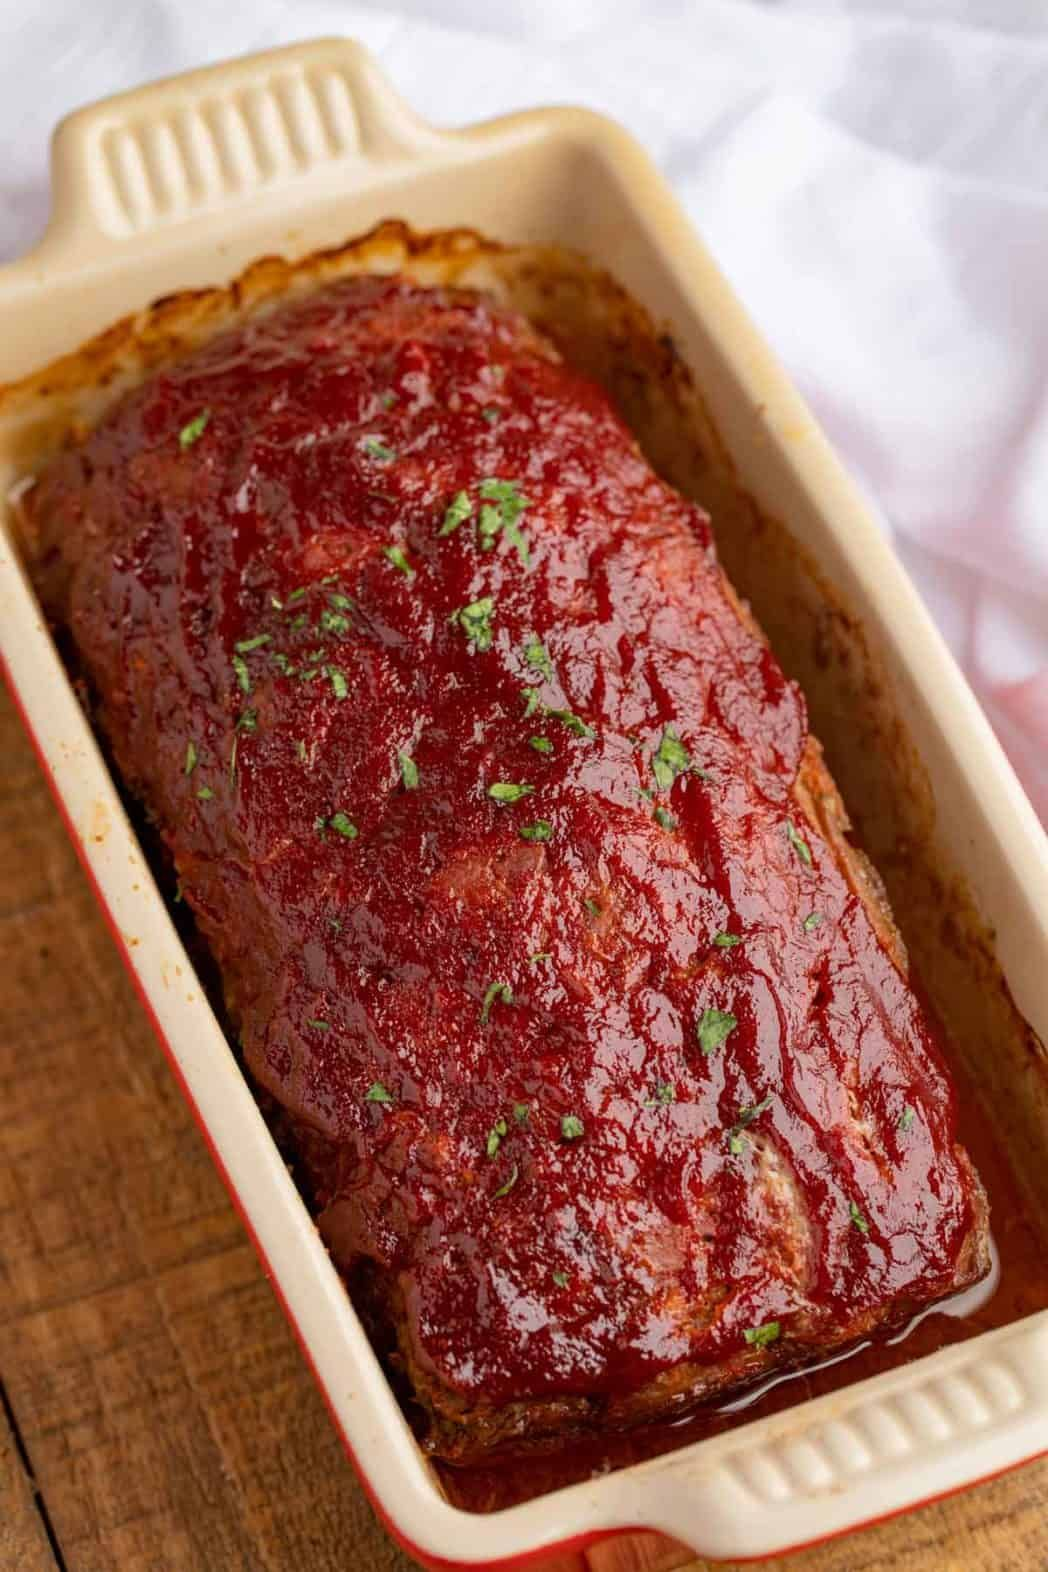 Classic Beef Meatloaf that's tender, juicy, easy to make